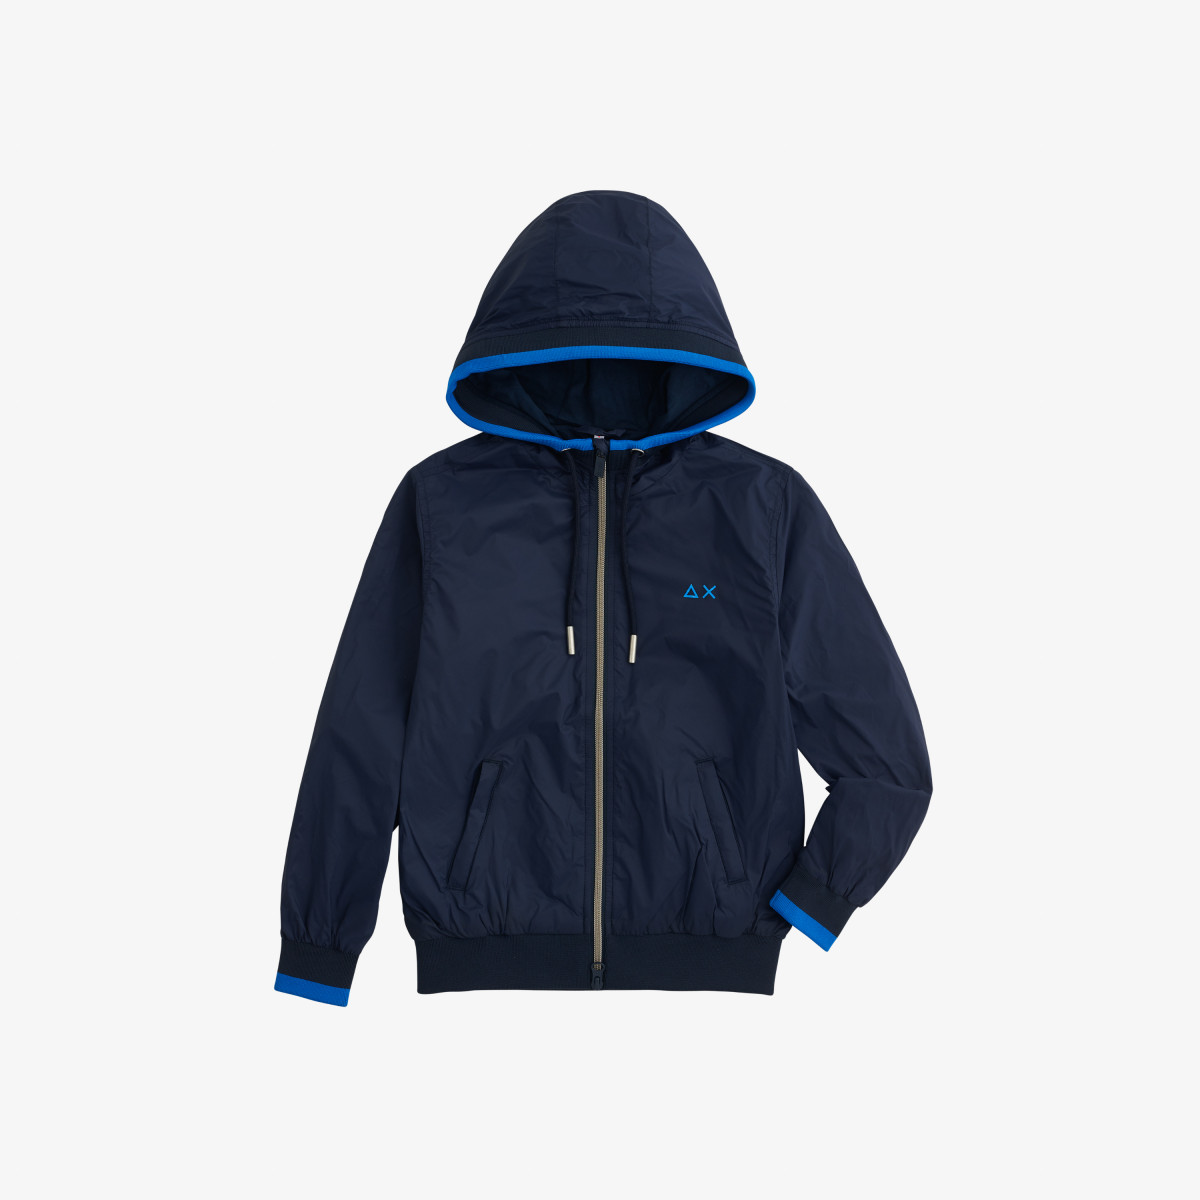 BOY'S RAIN JACKET HERITAGE NAVY BLUE